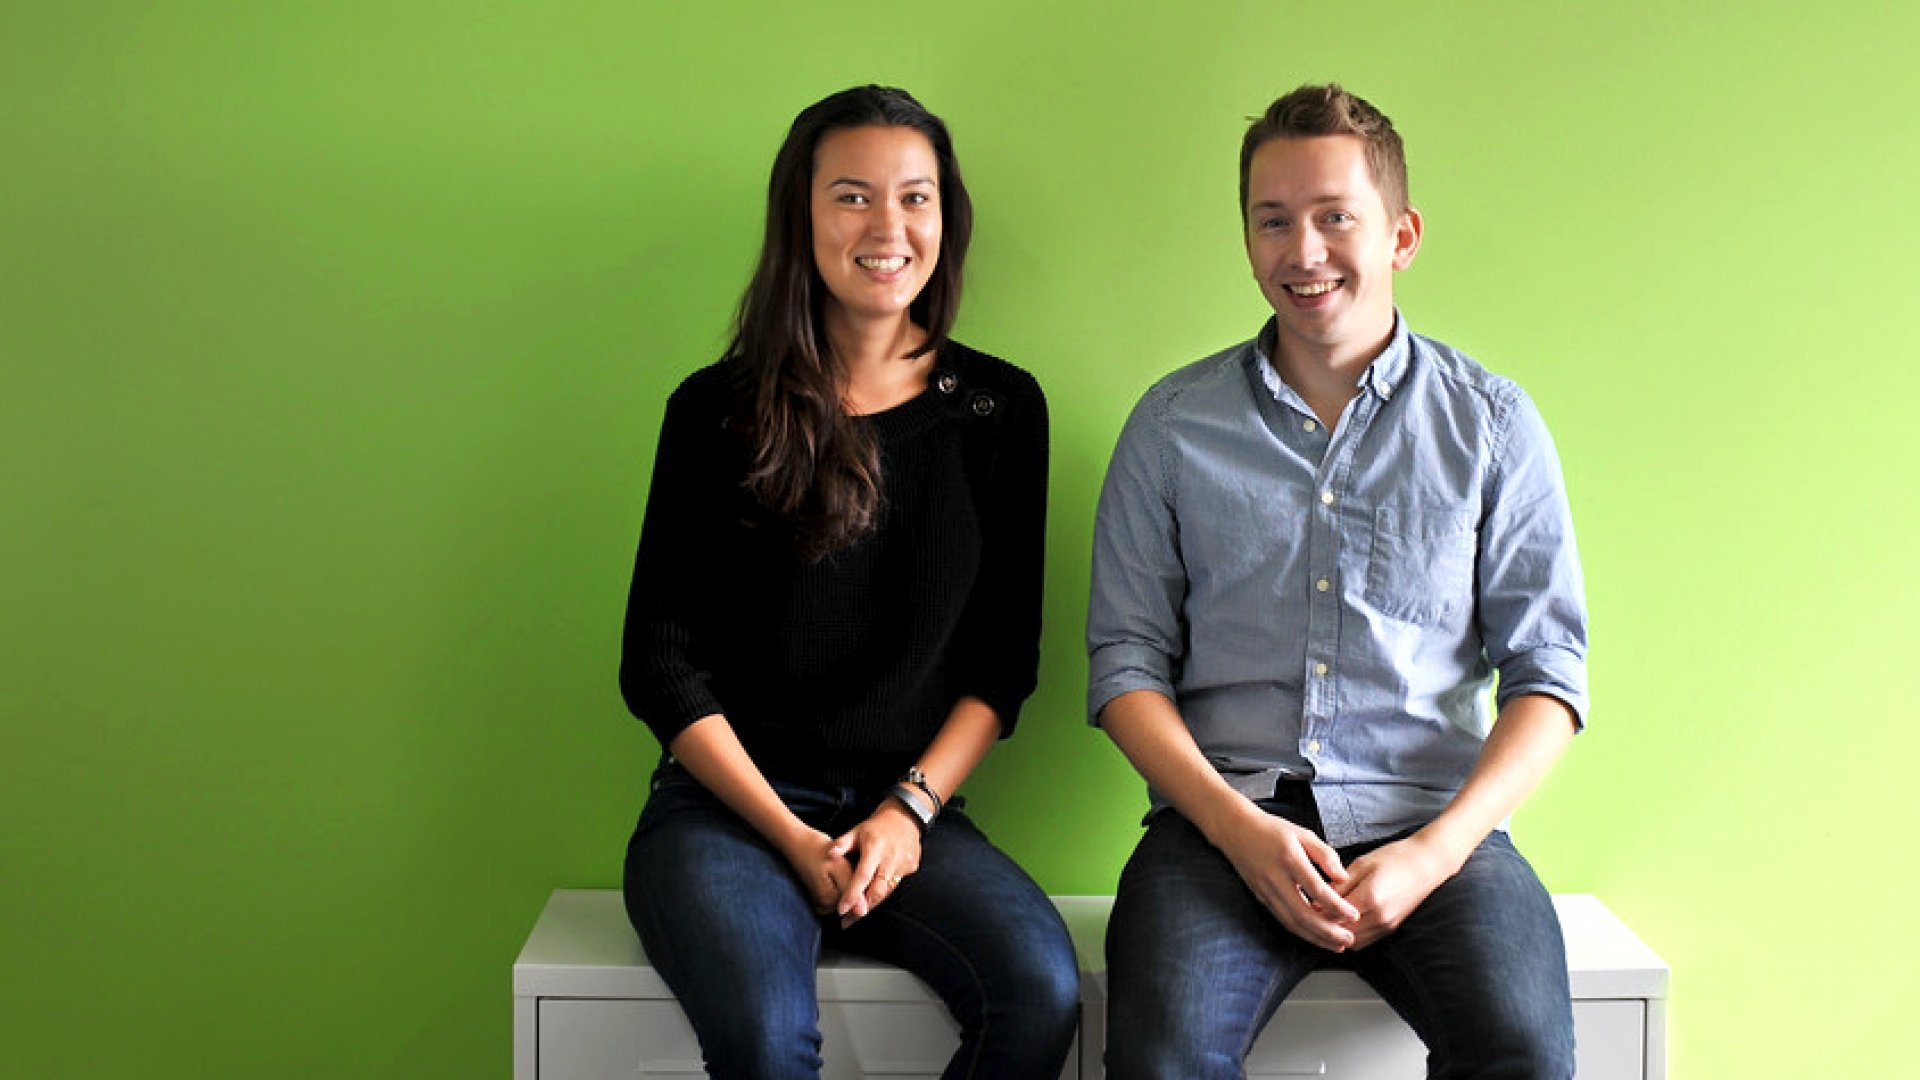 Shippo co-founders Laura Behrens Wu and Simon Kreuz.